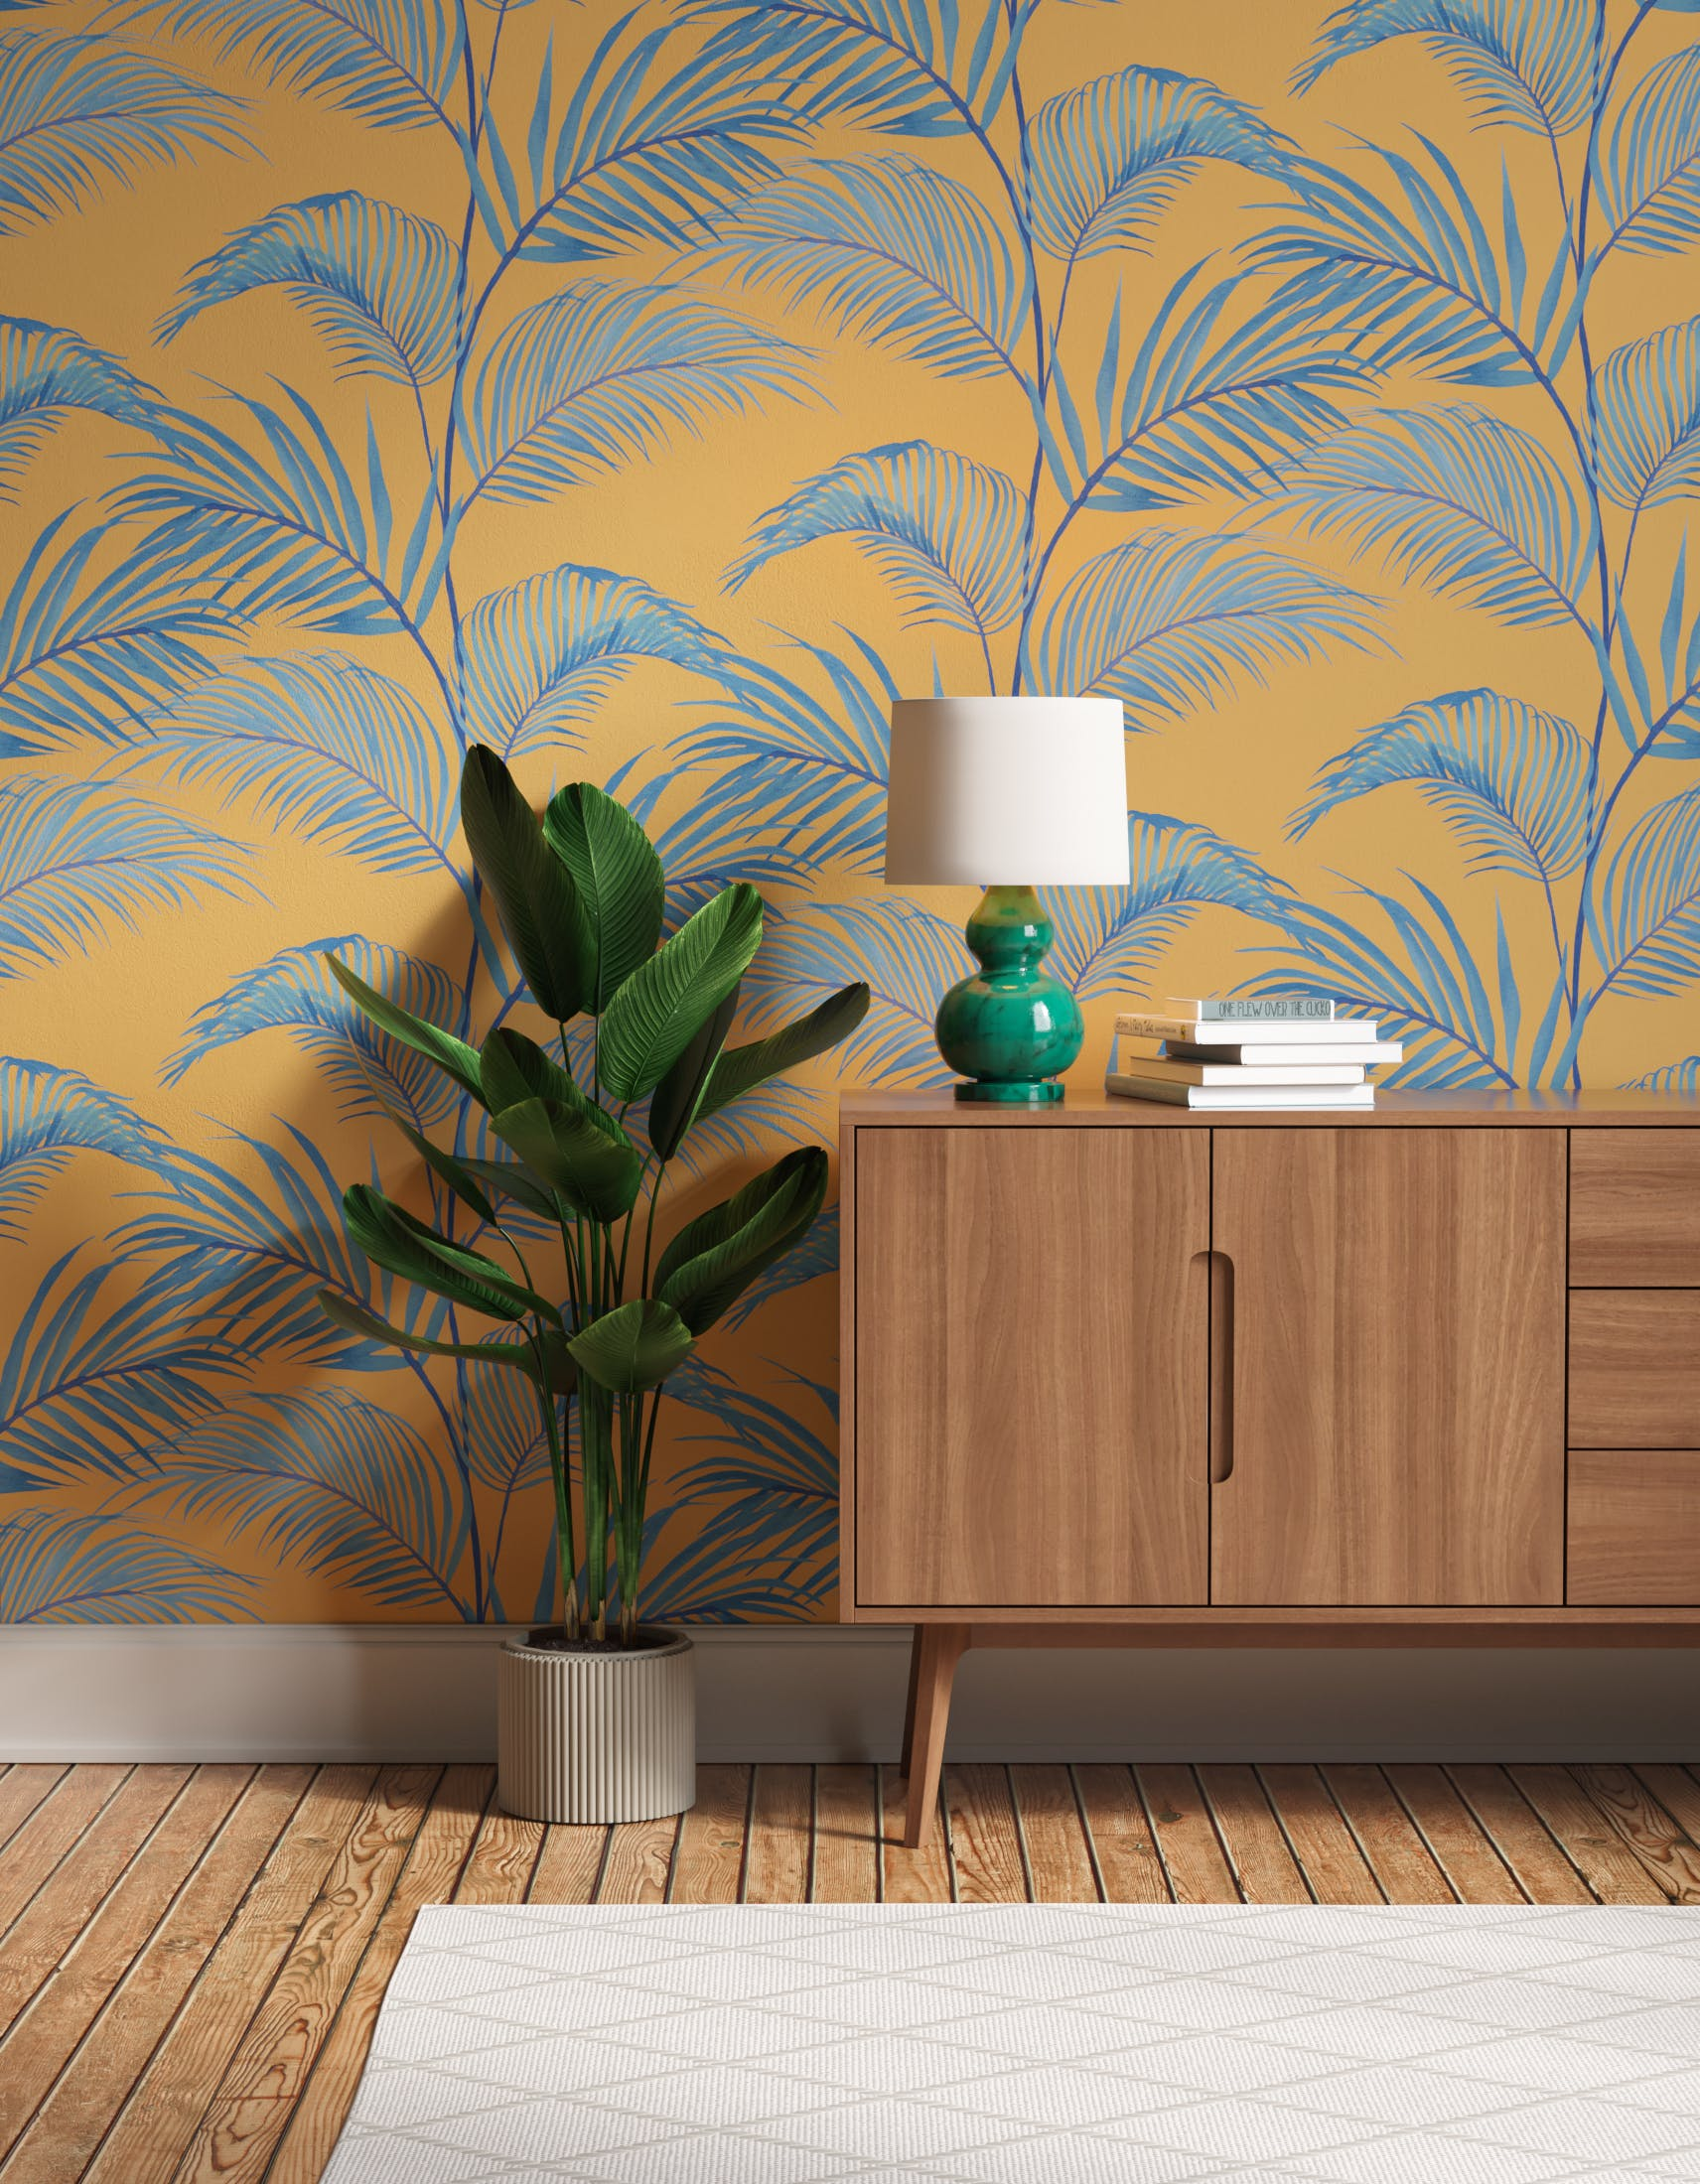 Hallway with yellow and blue Jungle 01 wallpaper, a large house plant, cabinet and green lamp.